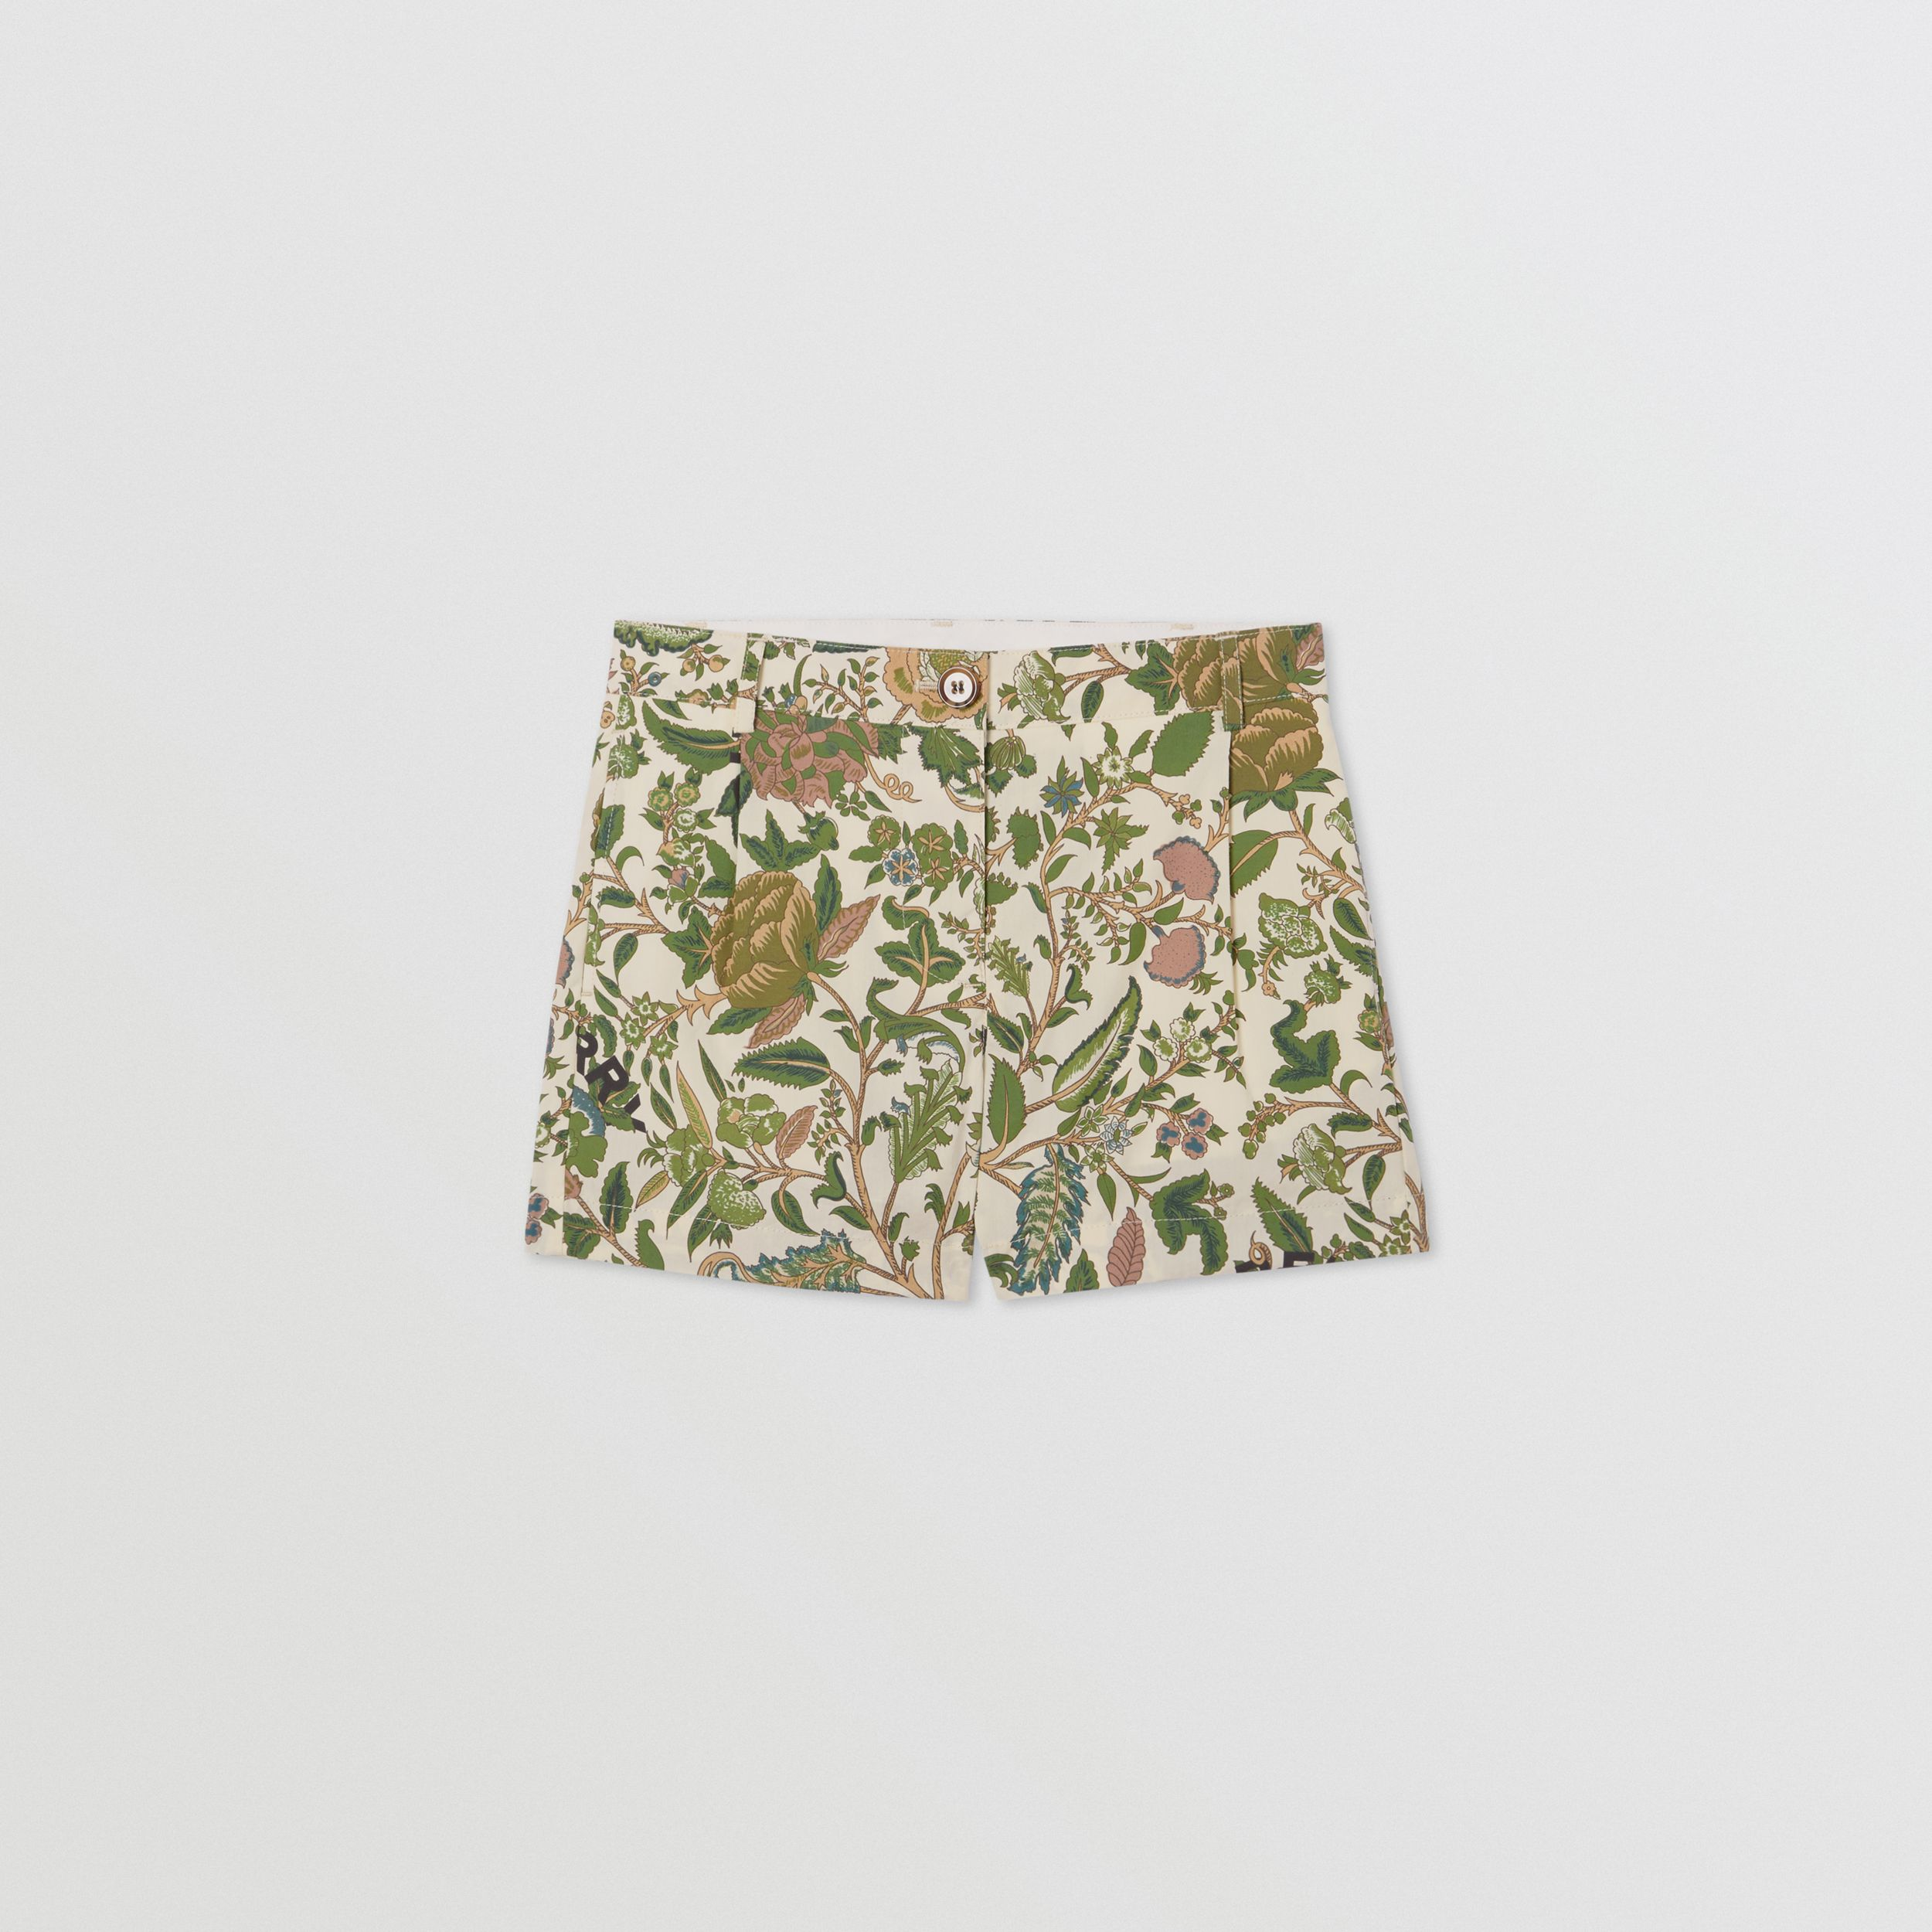 Botanical Print Cotton Tailored Shorts in Olive | Burberry Hong Kong S.A.R - 1